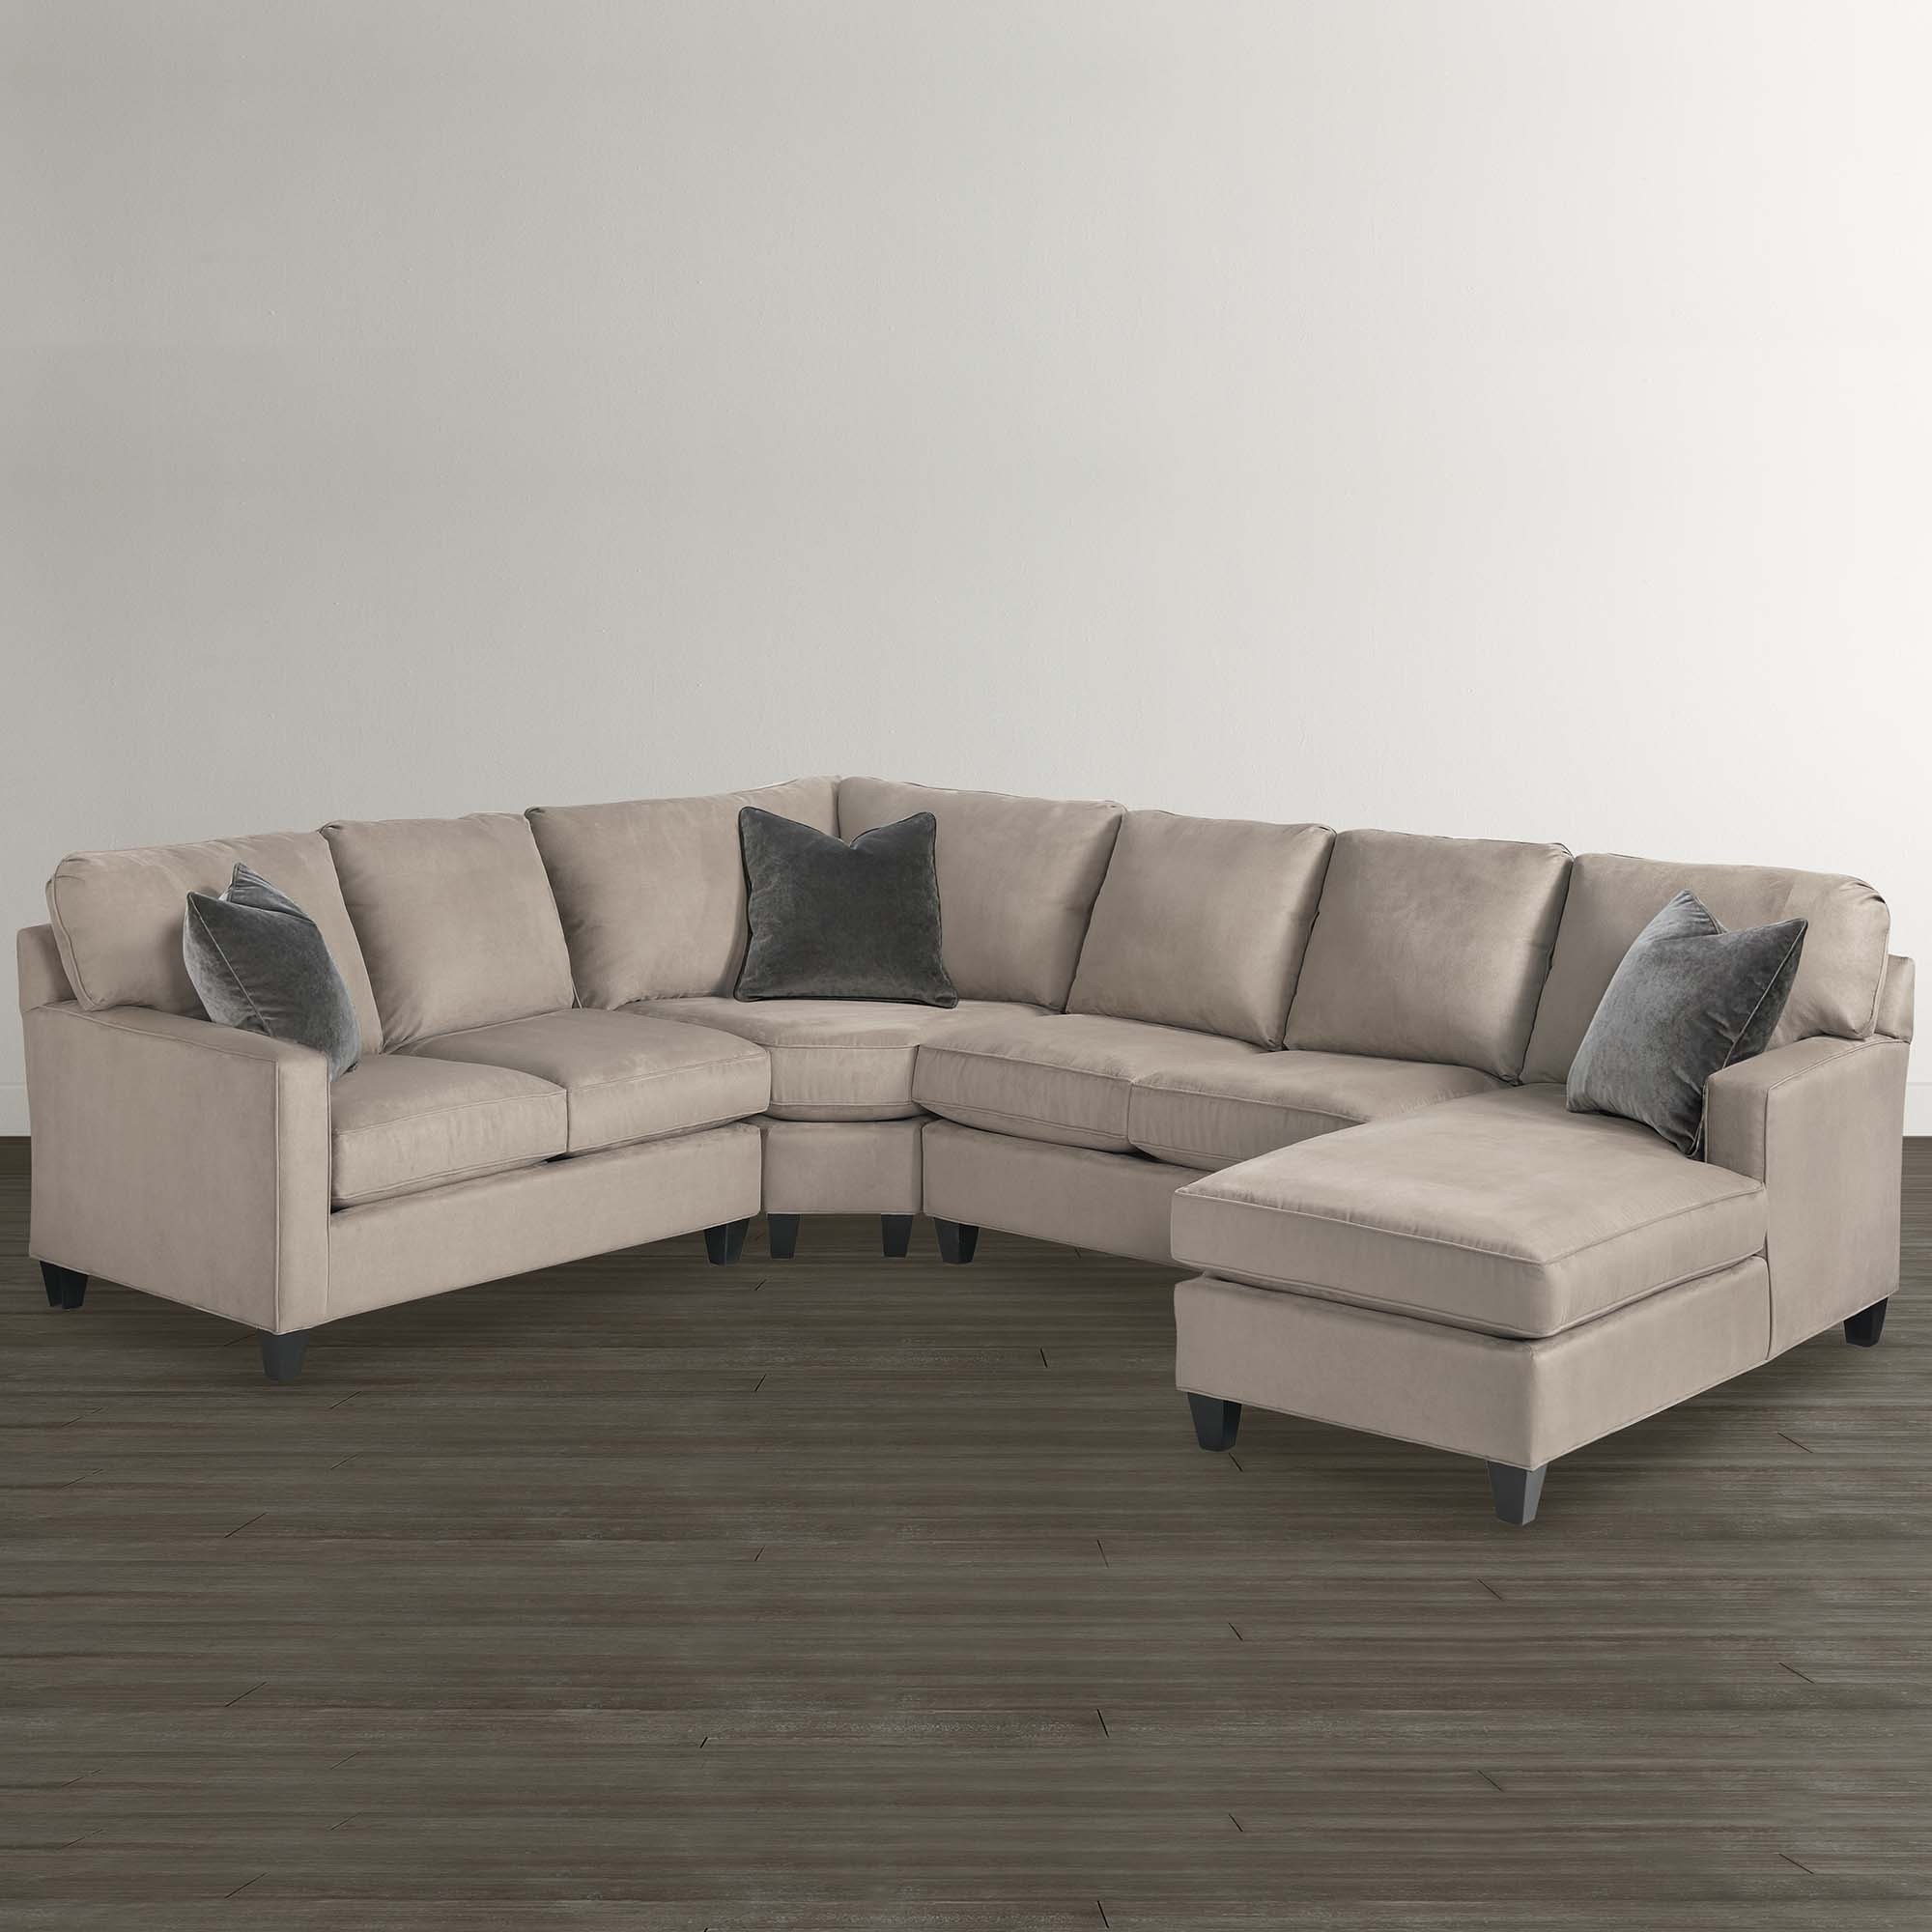 A Sectional Sofa Collection With Something For Everyone Pertaining To C Shaped Sectional Sofa (Image 3 of 15)